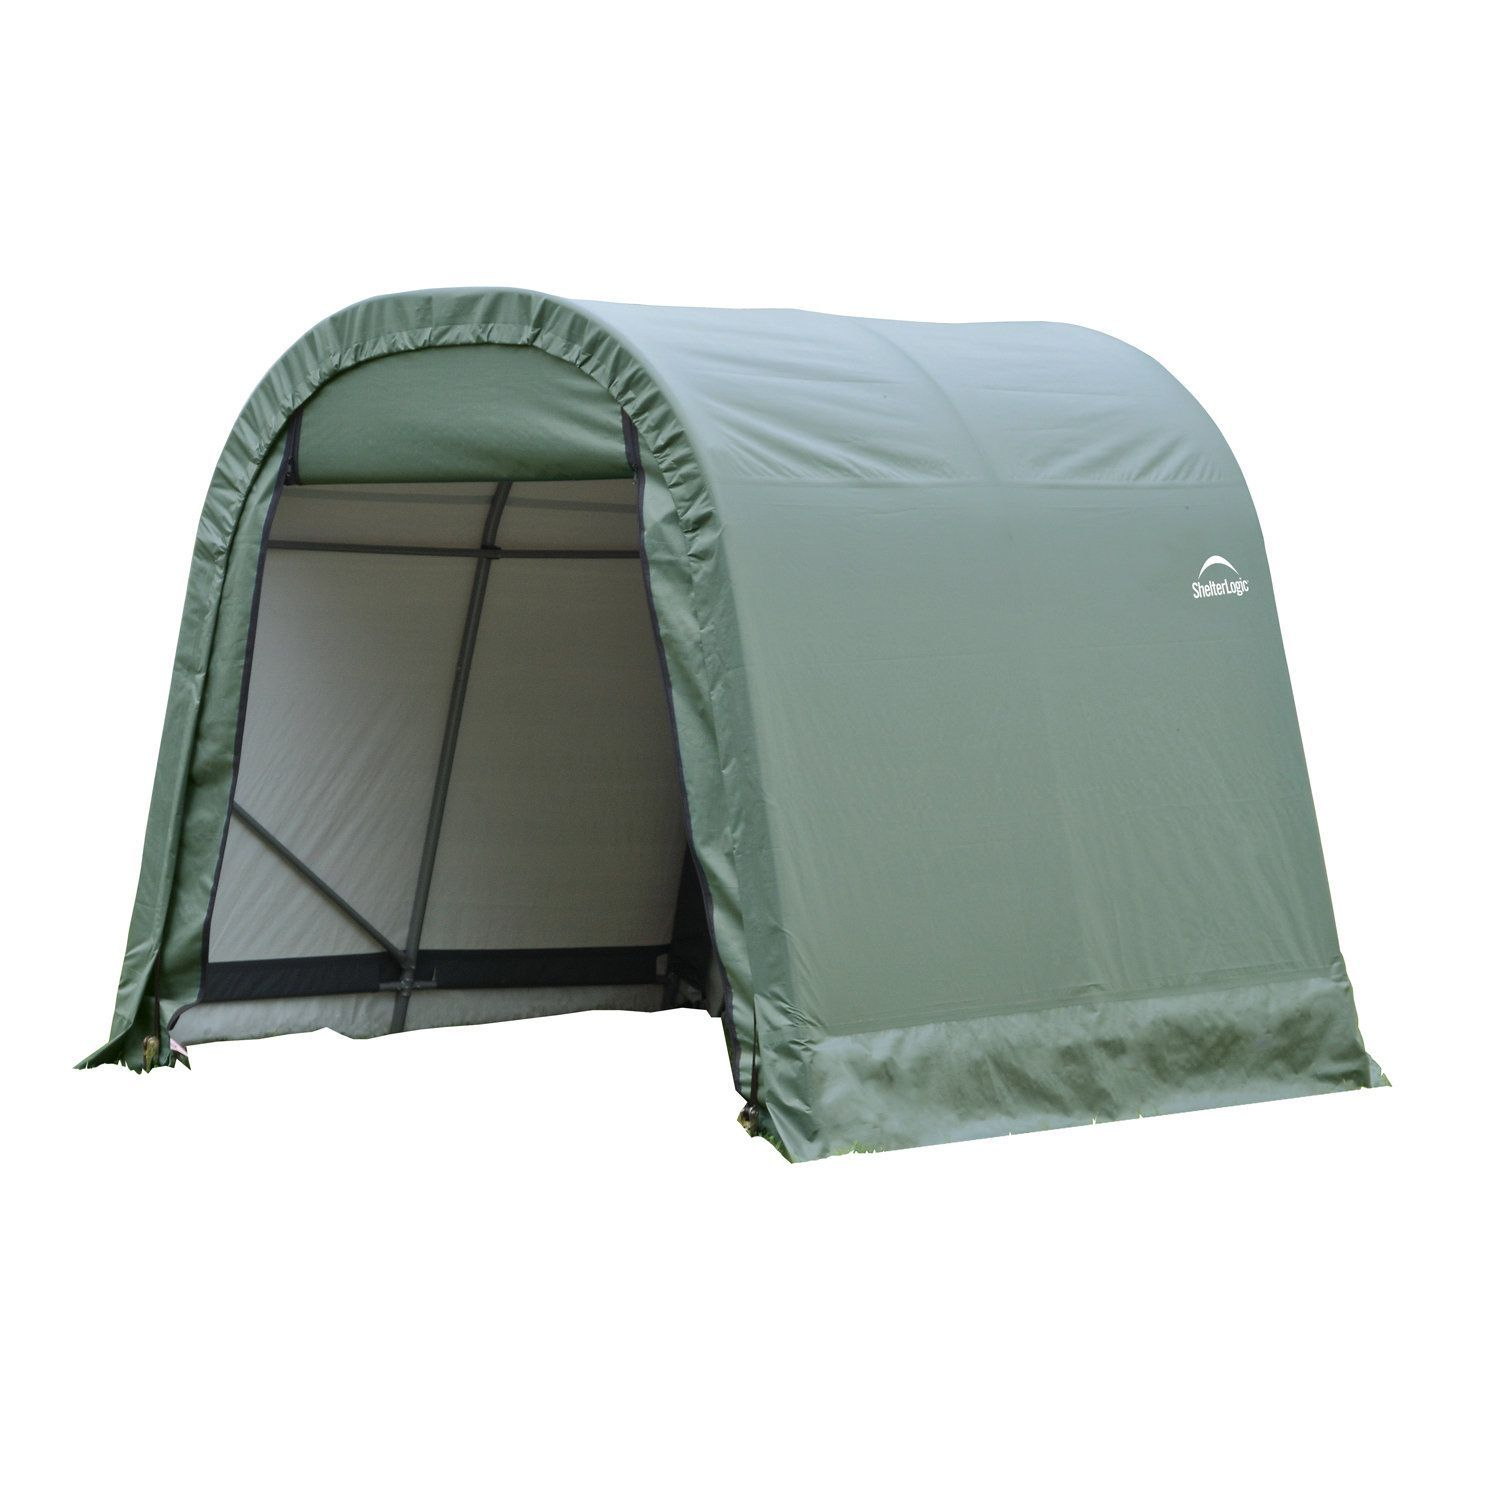 Shelterlogic Outdoor Round Garage Boat/ Car Green 8 x 8 x 12-foot Storage Shed (Shelterlogic Outdoor Round Green Shed 8'x12'x8') #76814